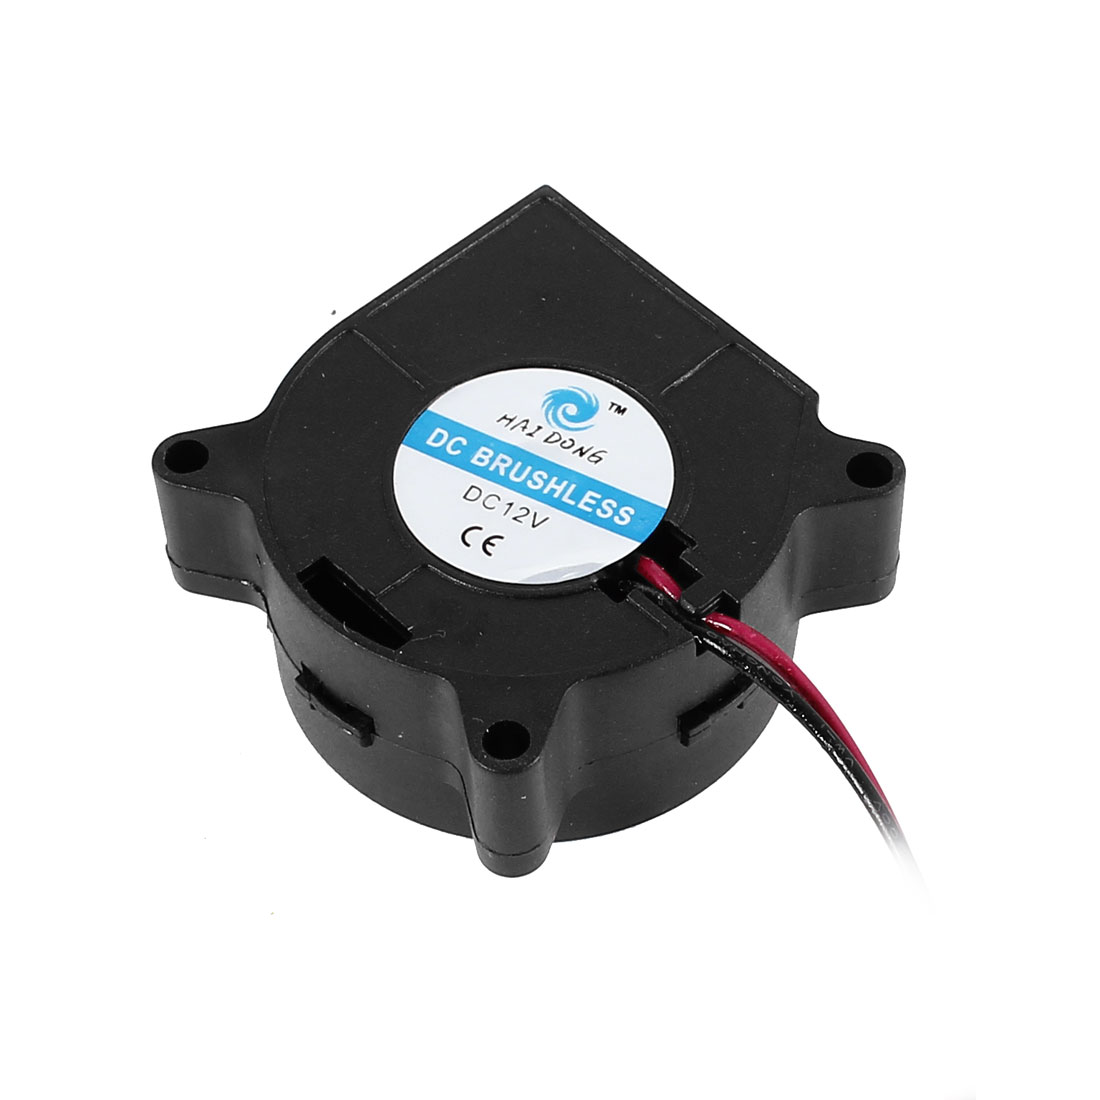 40mm x 20mm DC 12V 2Pin 3000RPM Brushless Blower Cooling Fan